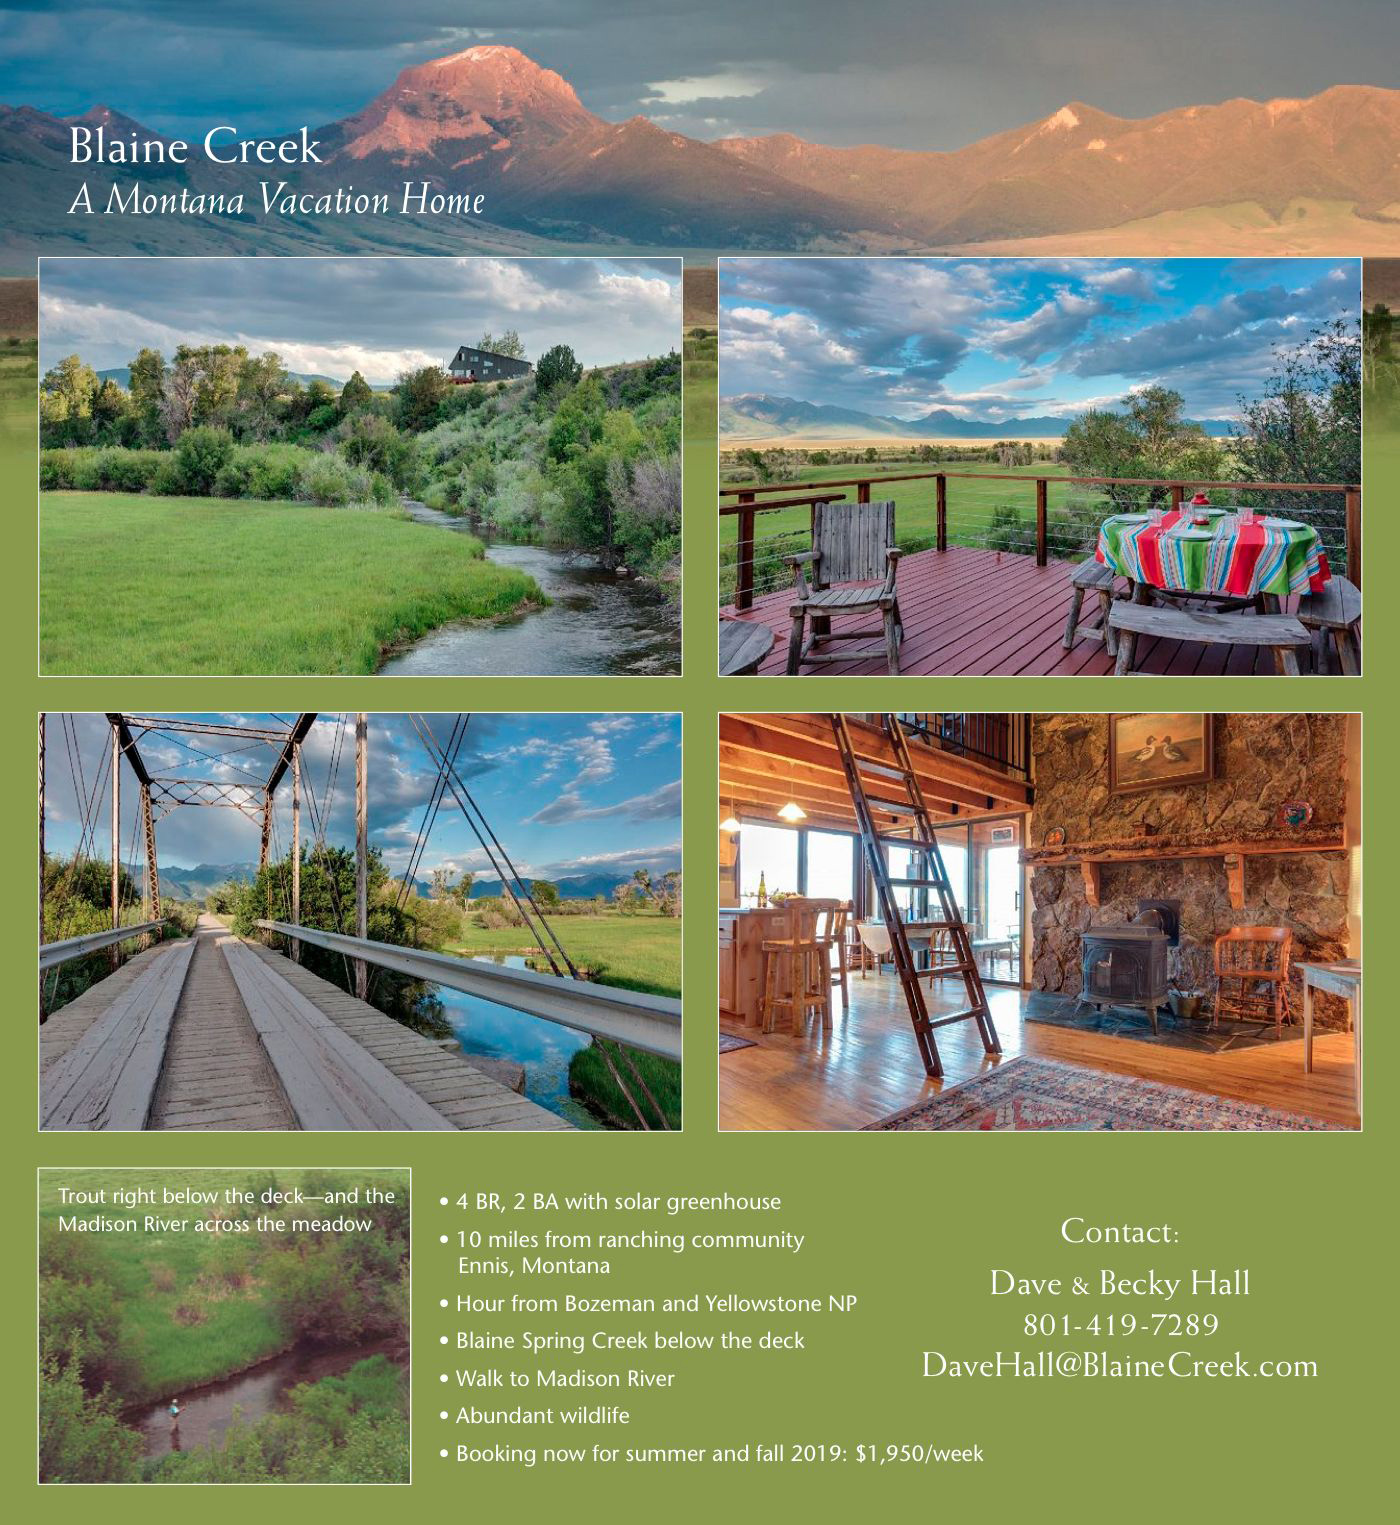 Blaine Creek - A Montana Vacation Home